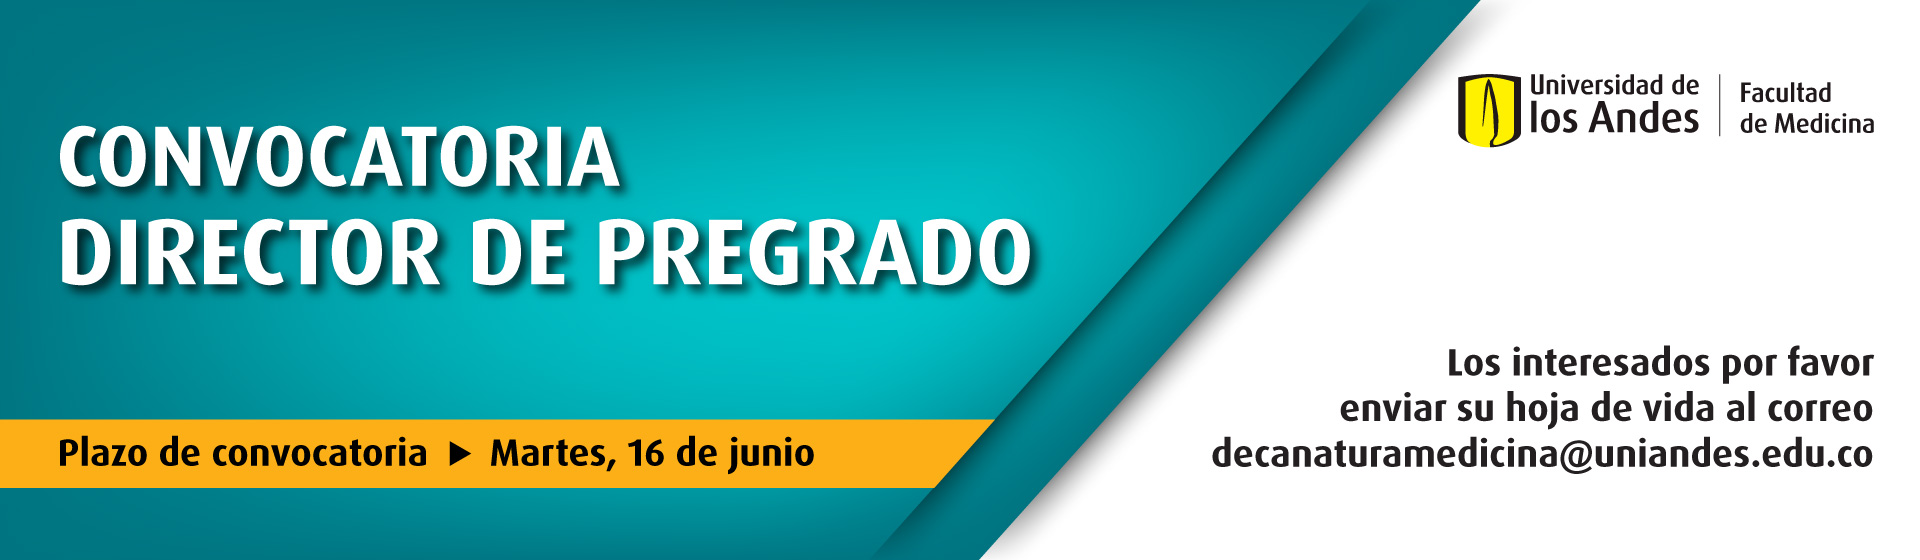 Convocatoria Director de Pregrado